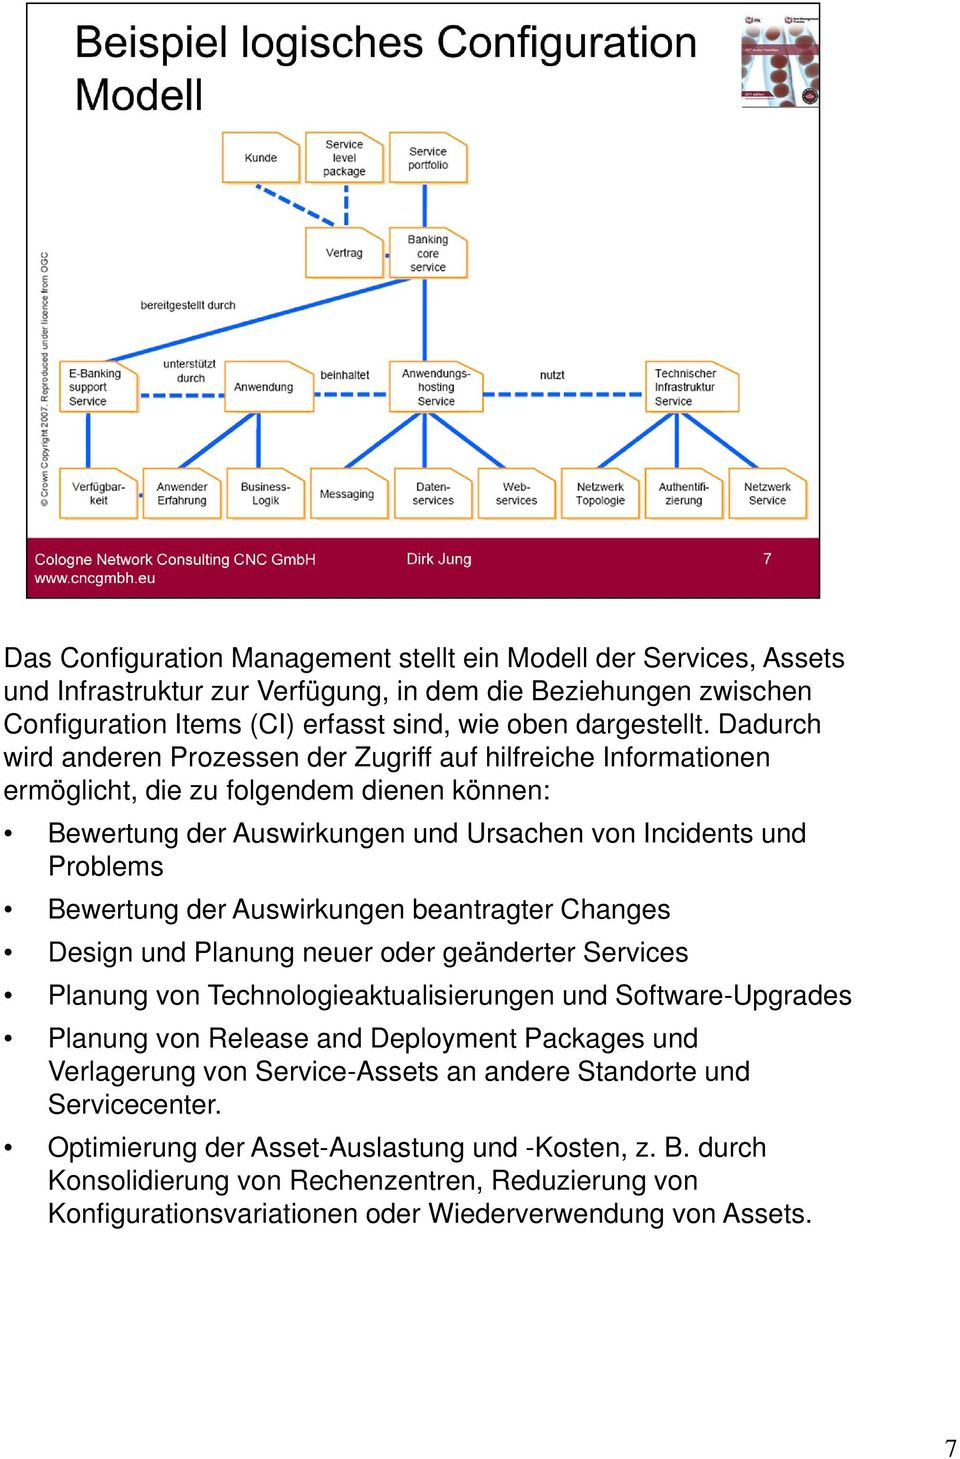 Auswirkungen beantragter Changes Design und Planung neuer oder geänderter Services Planung von Technologieaktualisierungen und Software-Upgrades Planung von Release and Deployment Packages und